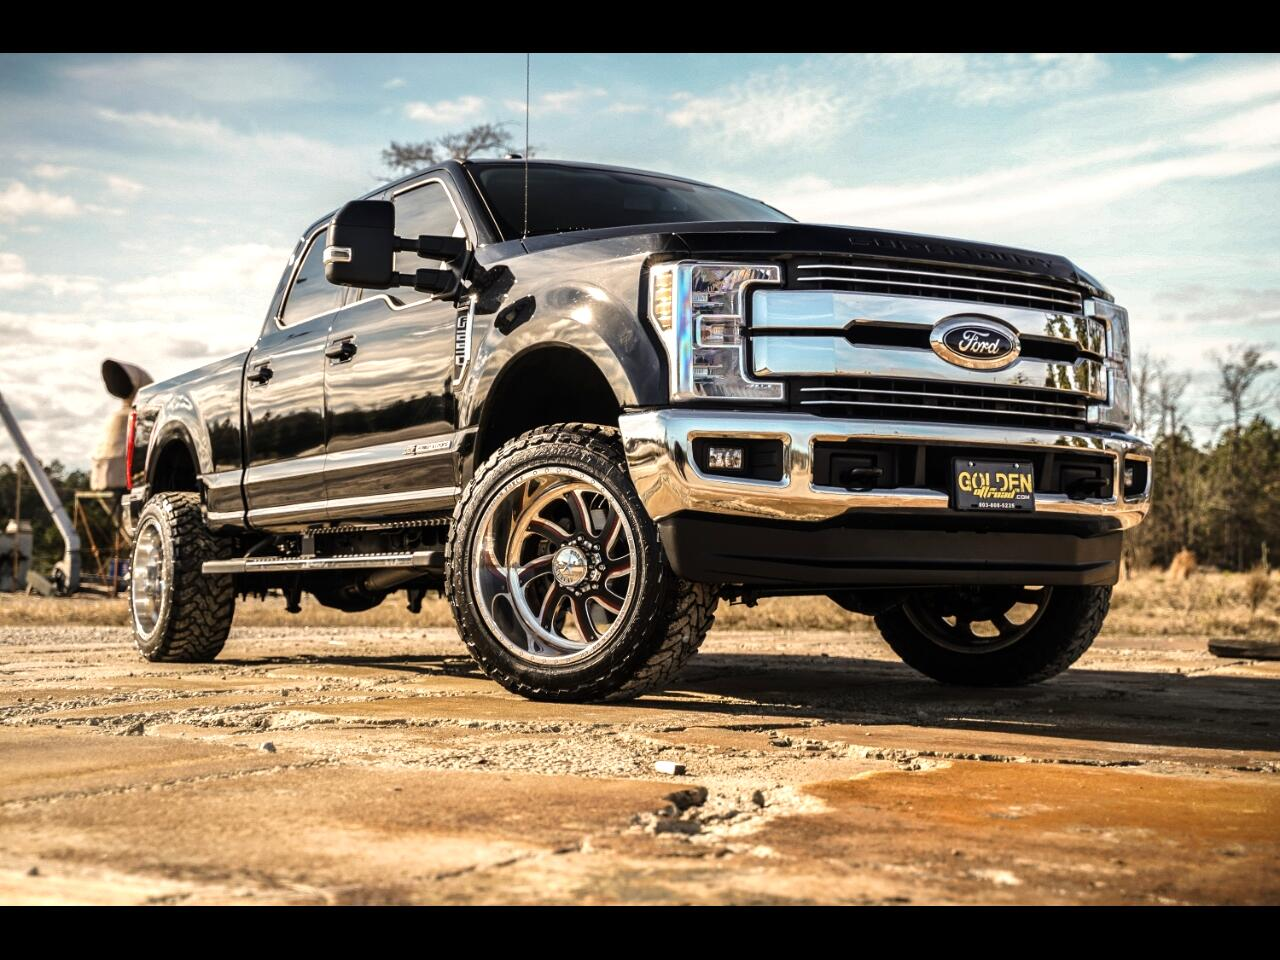 2018 Ford Super Duty F-250 SRW 4wd Crew Cab Lariat, Lifted, American Force 22's